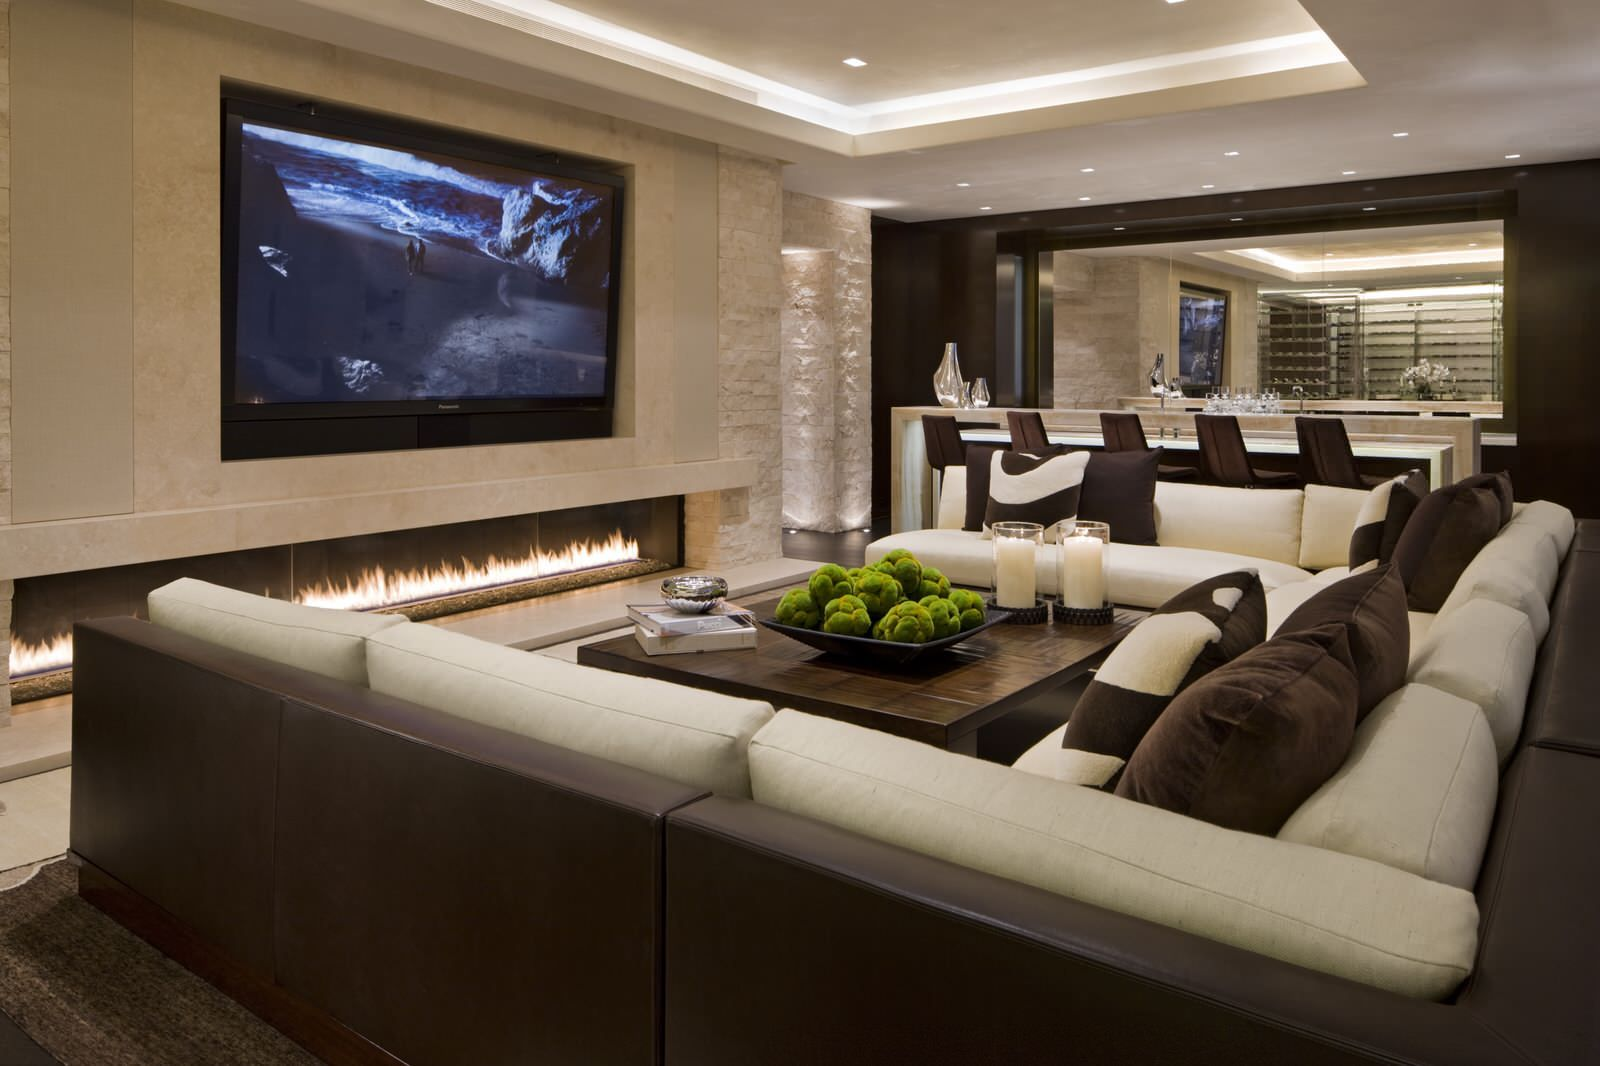 Deckenecke design für zuhause media room with inwall television and fireplace and c shaped couch